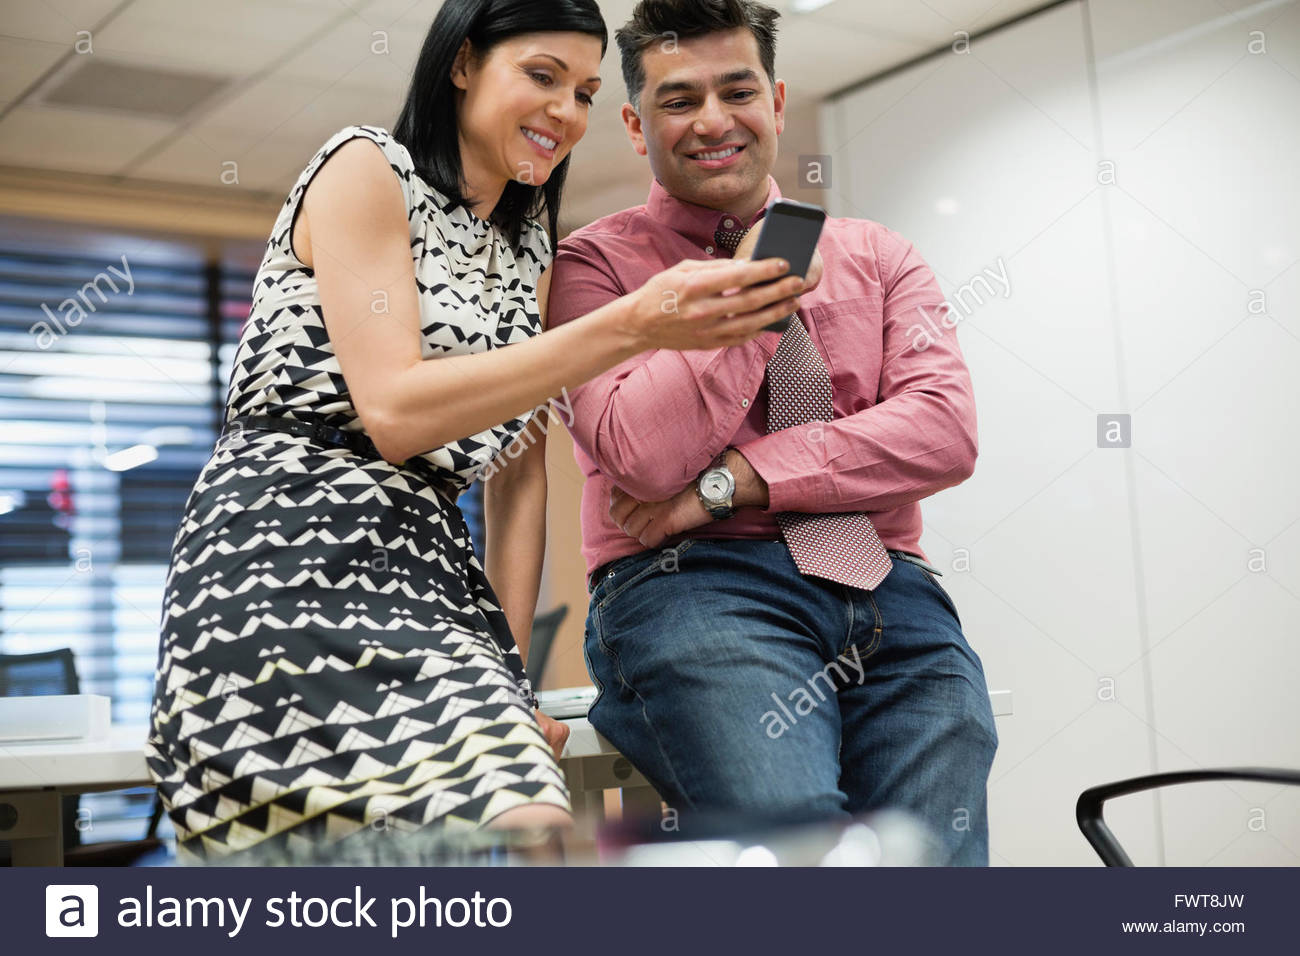 Business colleagues using mobile phone together in office Stock Photo